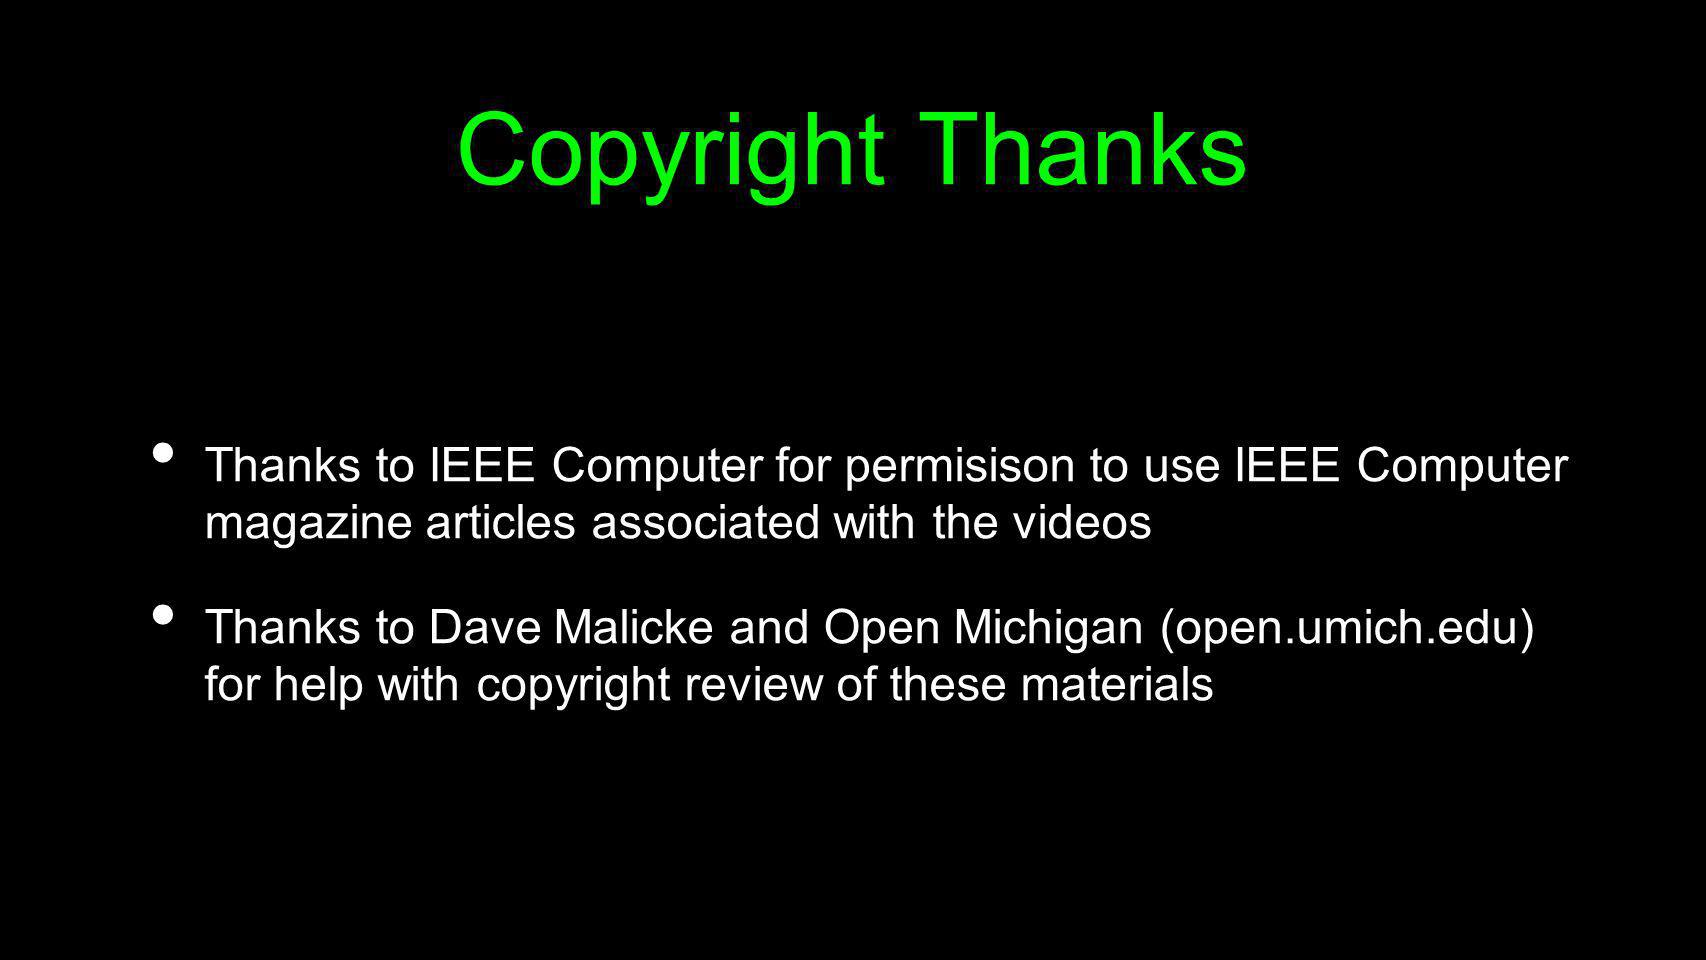 Copyright ThanksThanks to IEEE Computer for permisison to use IEEE Computer magazine articles associated with the videos.